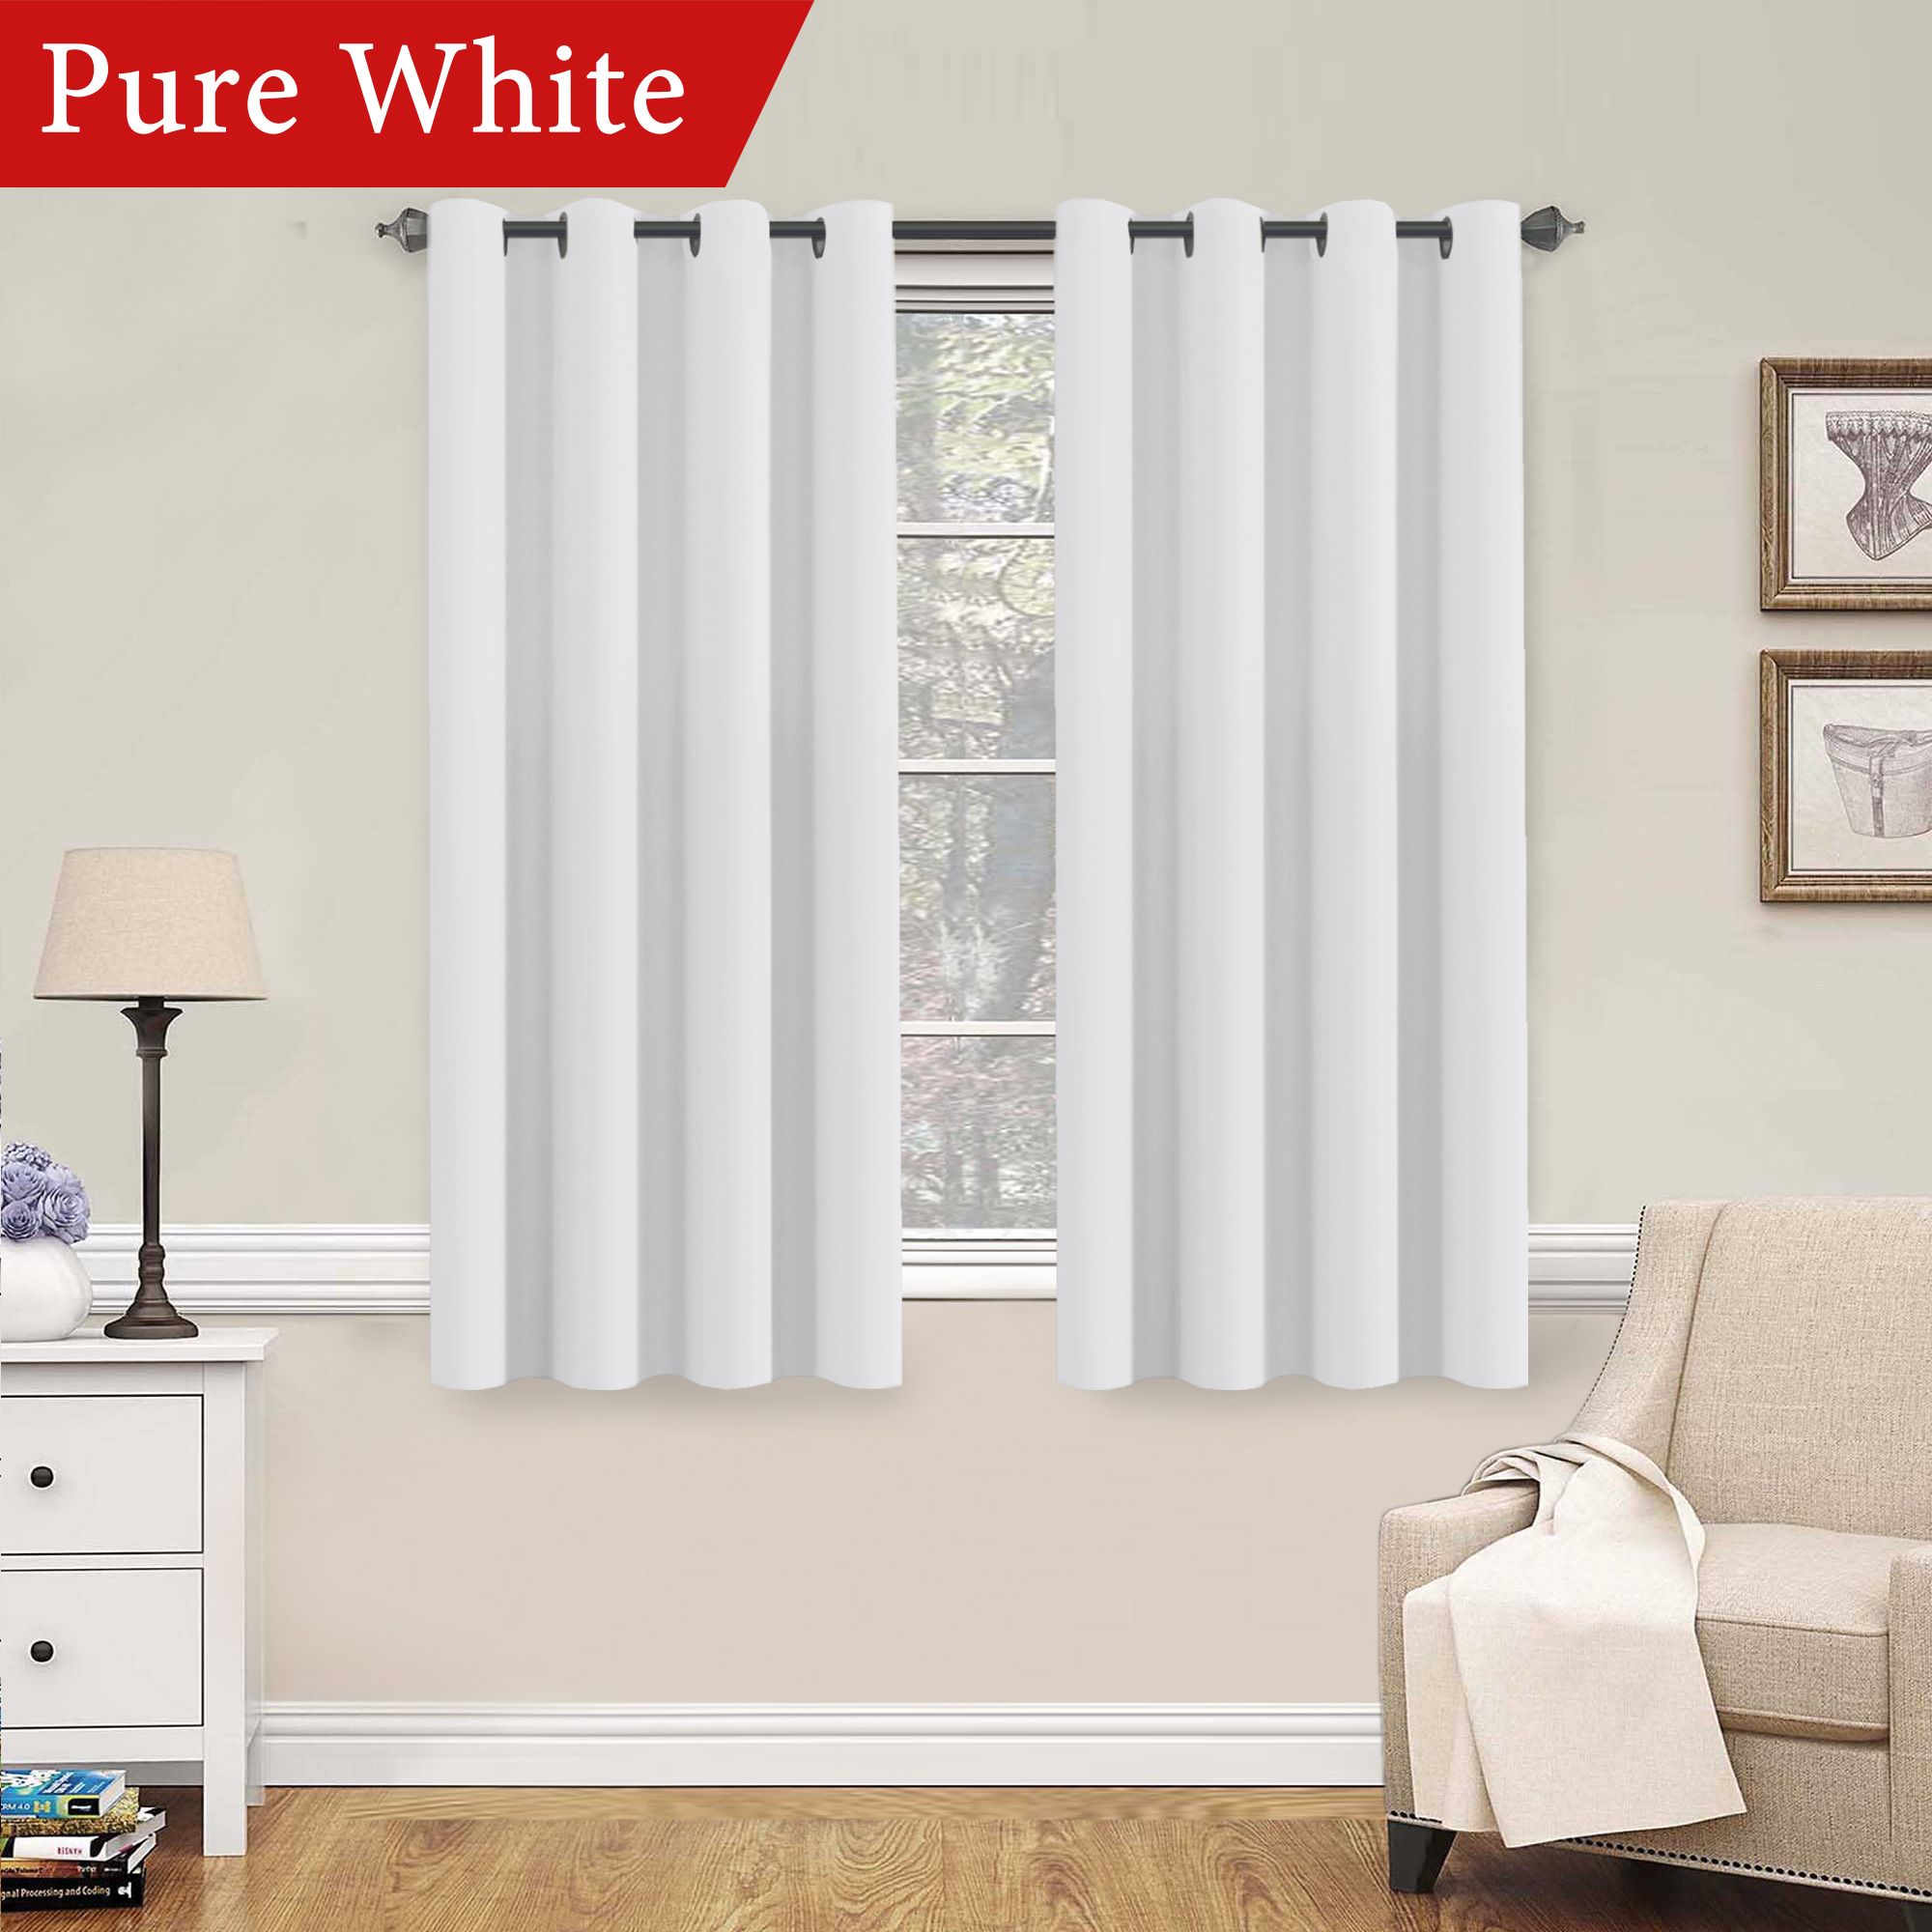 exciting living room curtains drapes | H.VERSAILTEX Pure White Curtains 63 inch Length Window ...